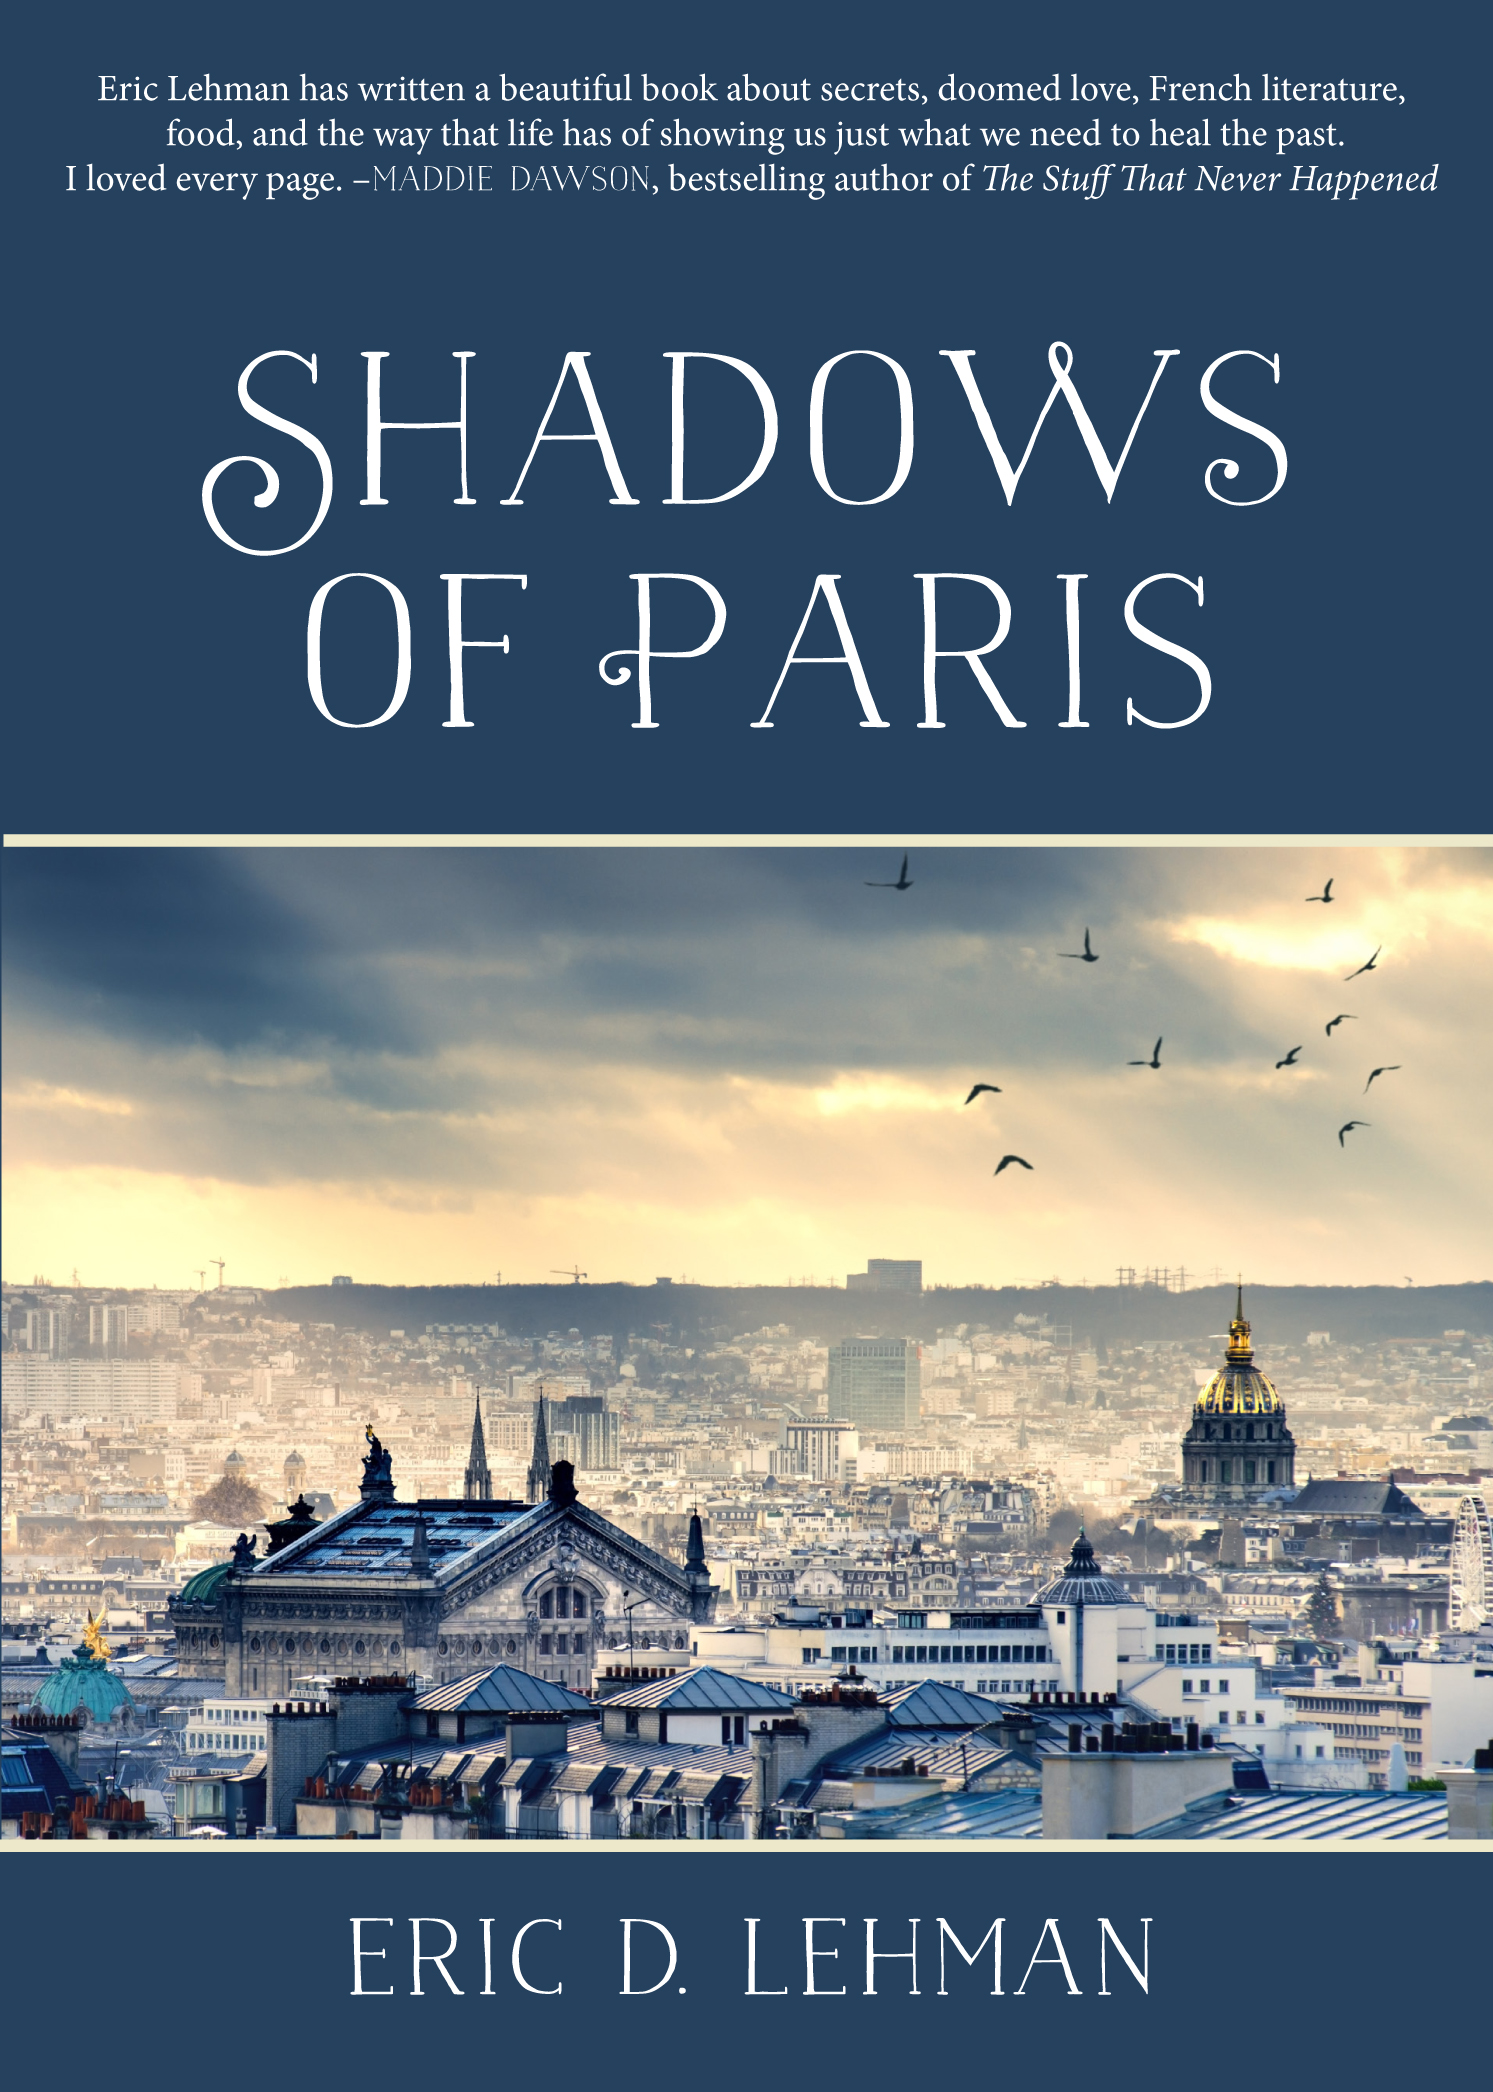 Shadows of Paris